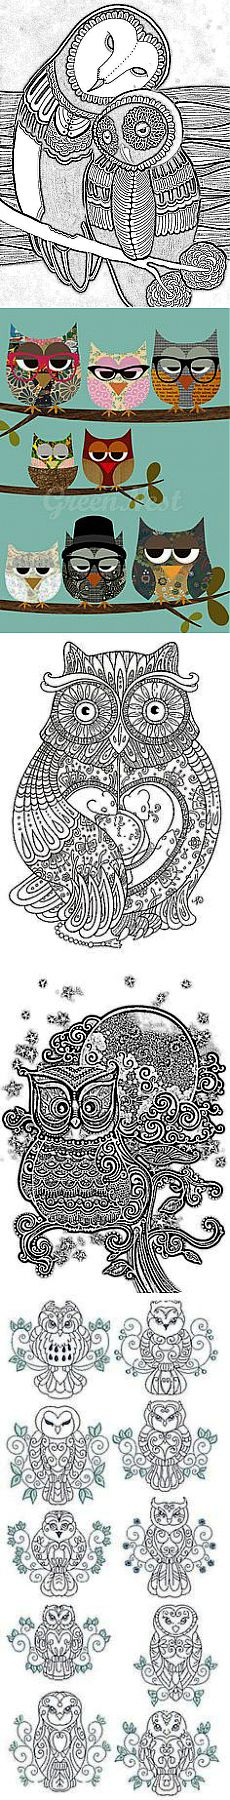 owl coloring page | ТРАФАРЕТЫ